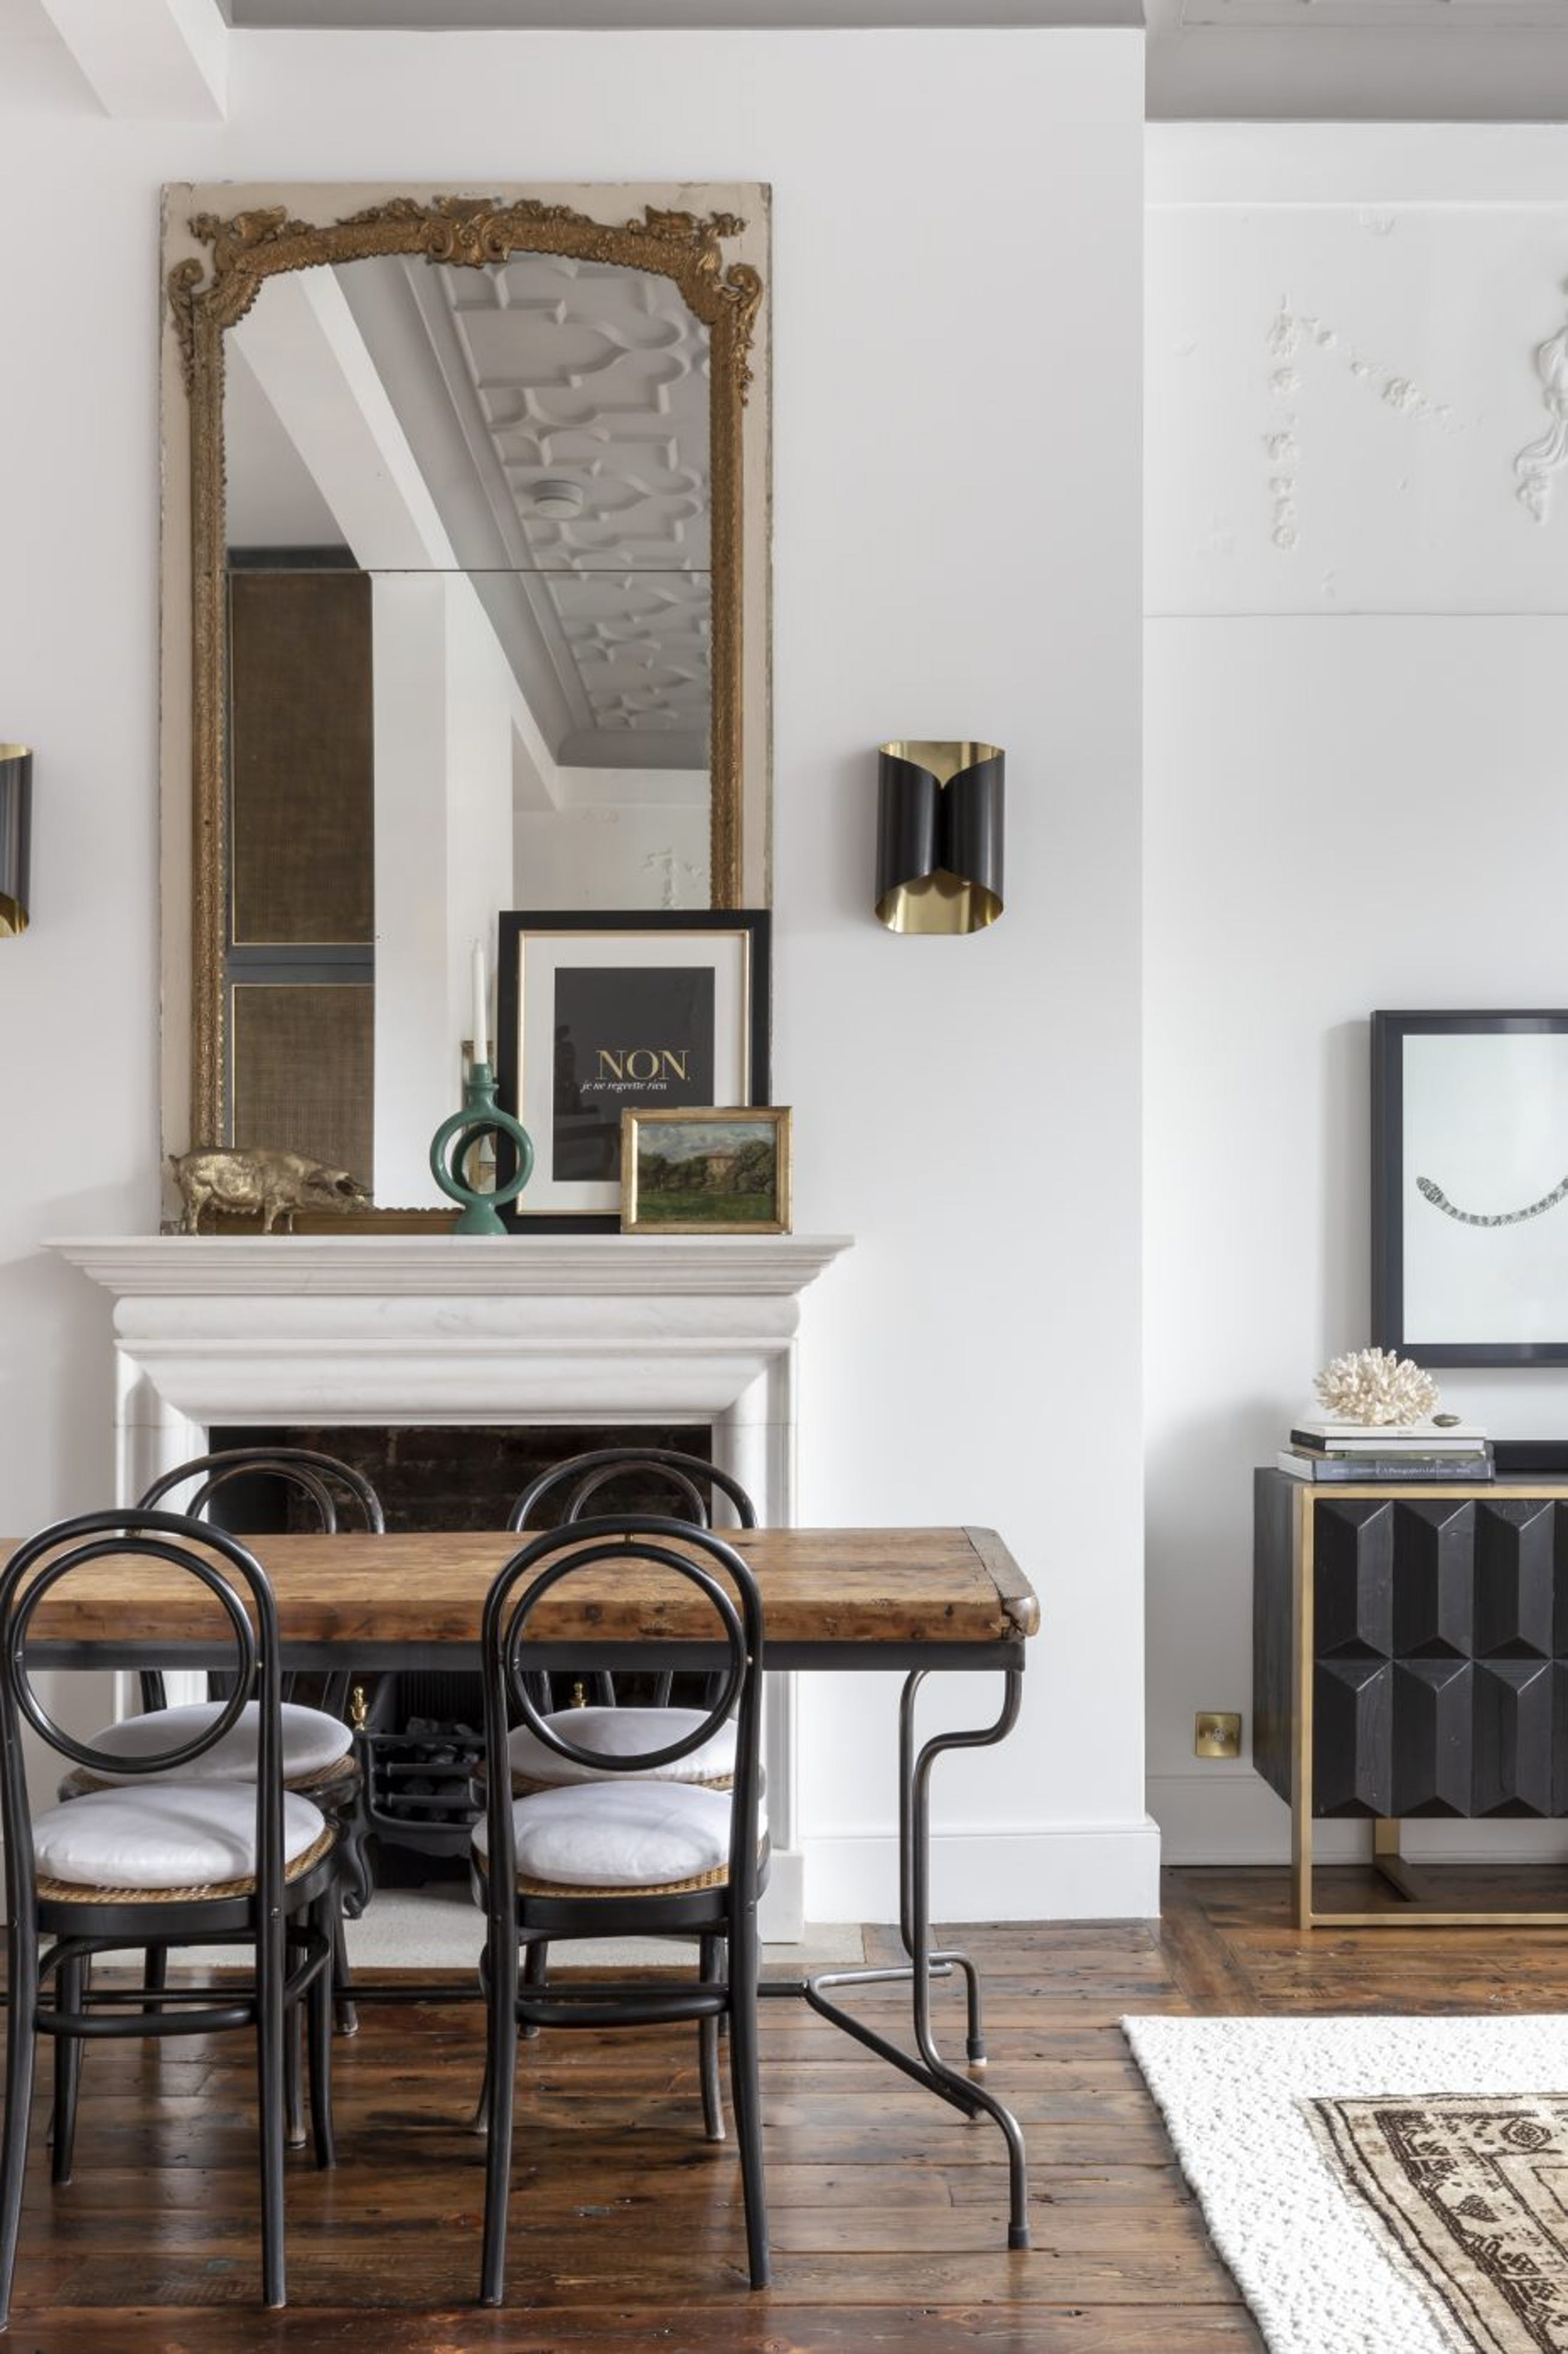 Red Deer design the interiors for an 18th-century grade II-listed Georgian townhouse in London